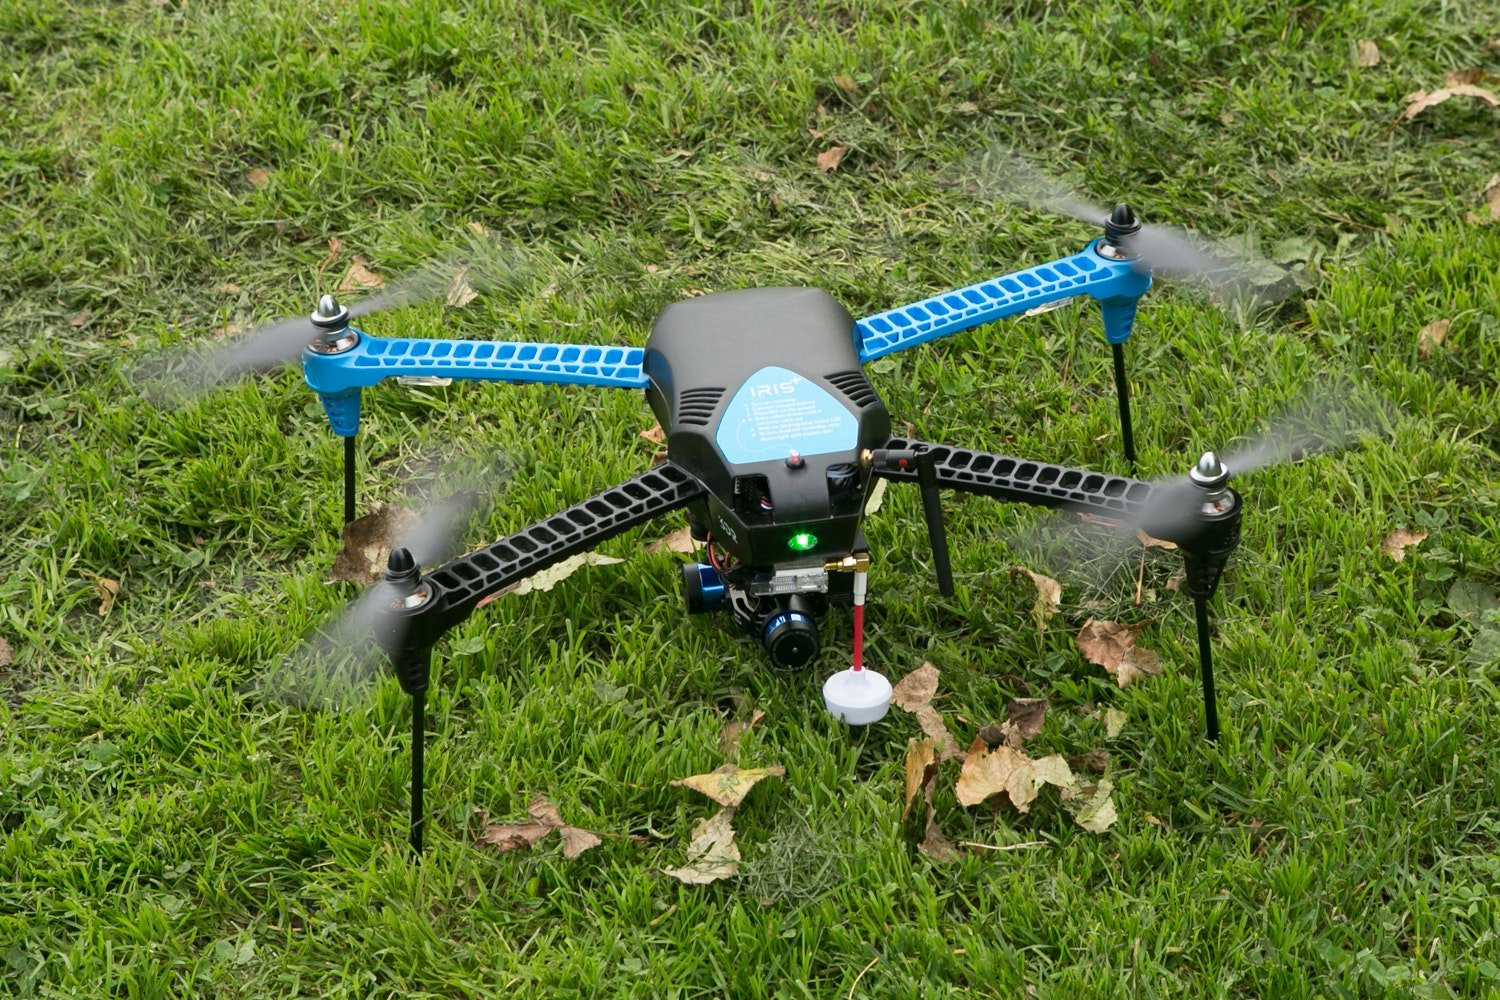 3DR Iris+ Aerial Surveyor Drone